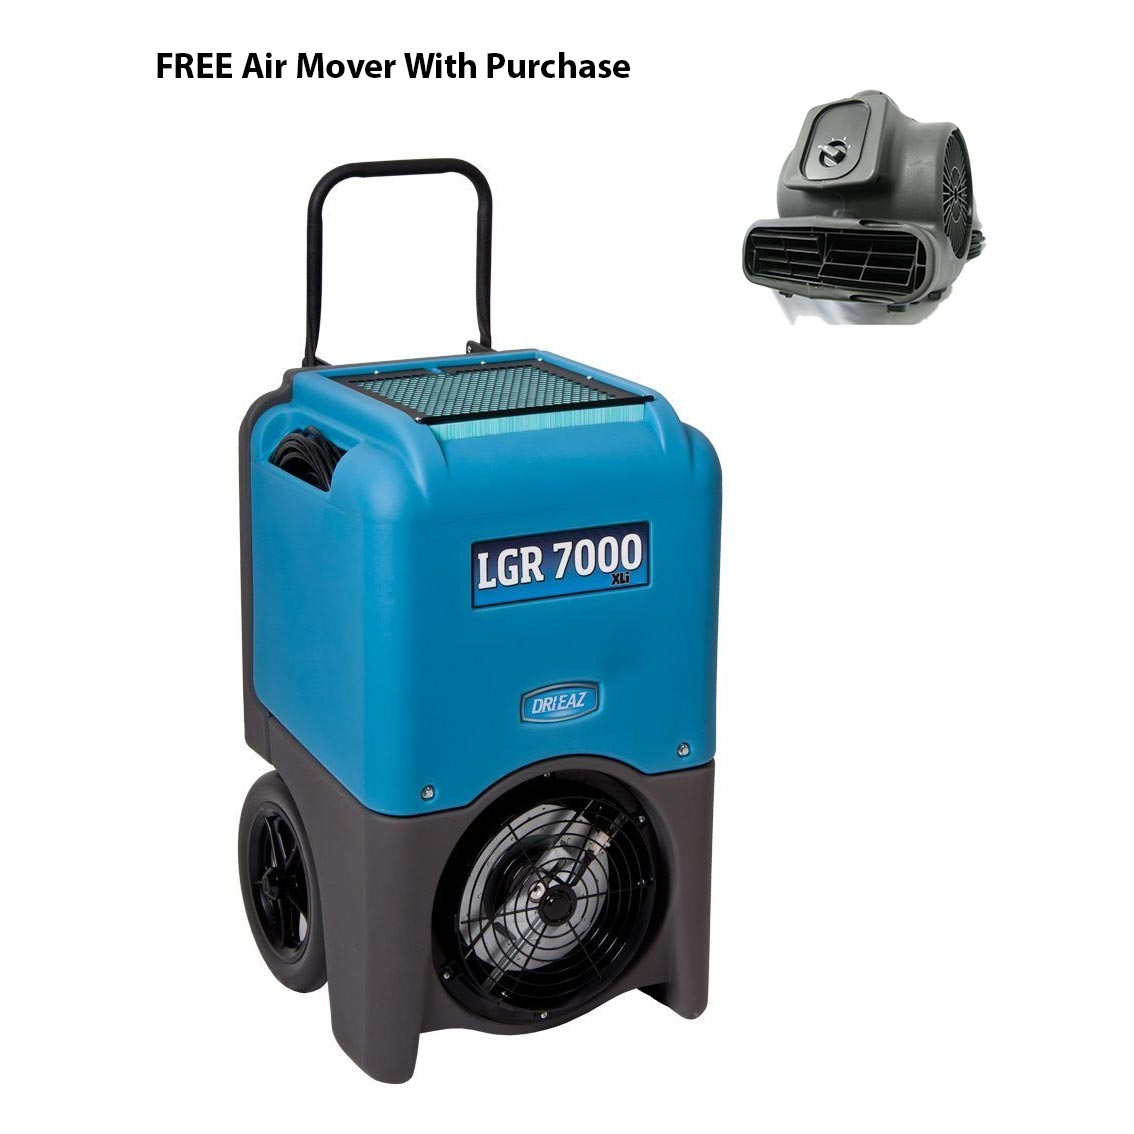 DriEaz F412 Drizair LGR 7000XLi Industrial Restoration Dehumidifier AC629 Air Mover and Freight Included